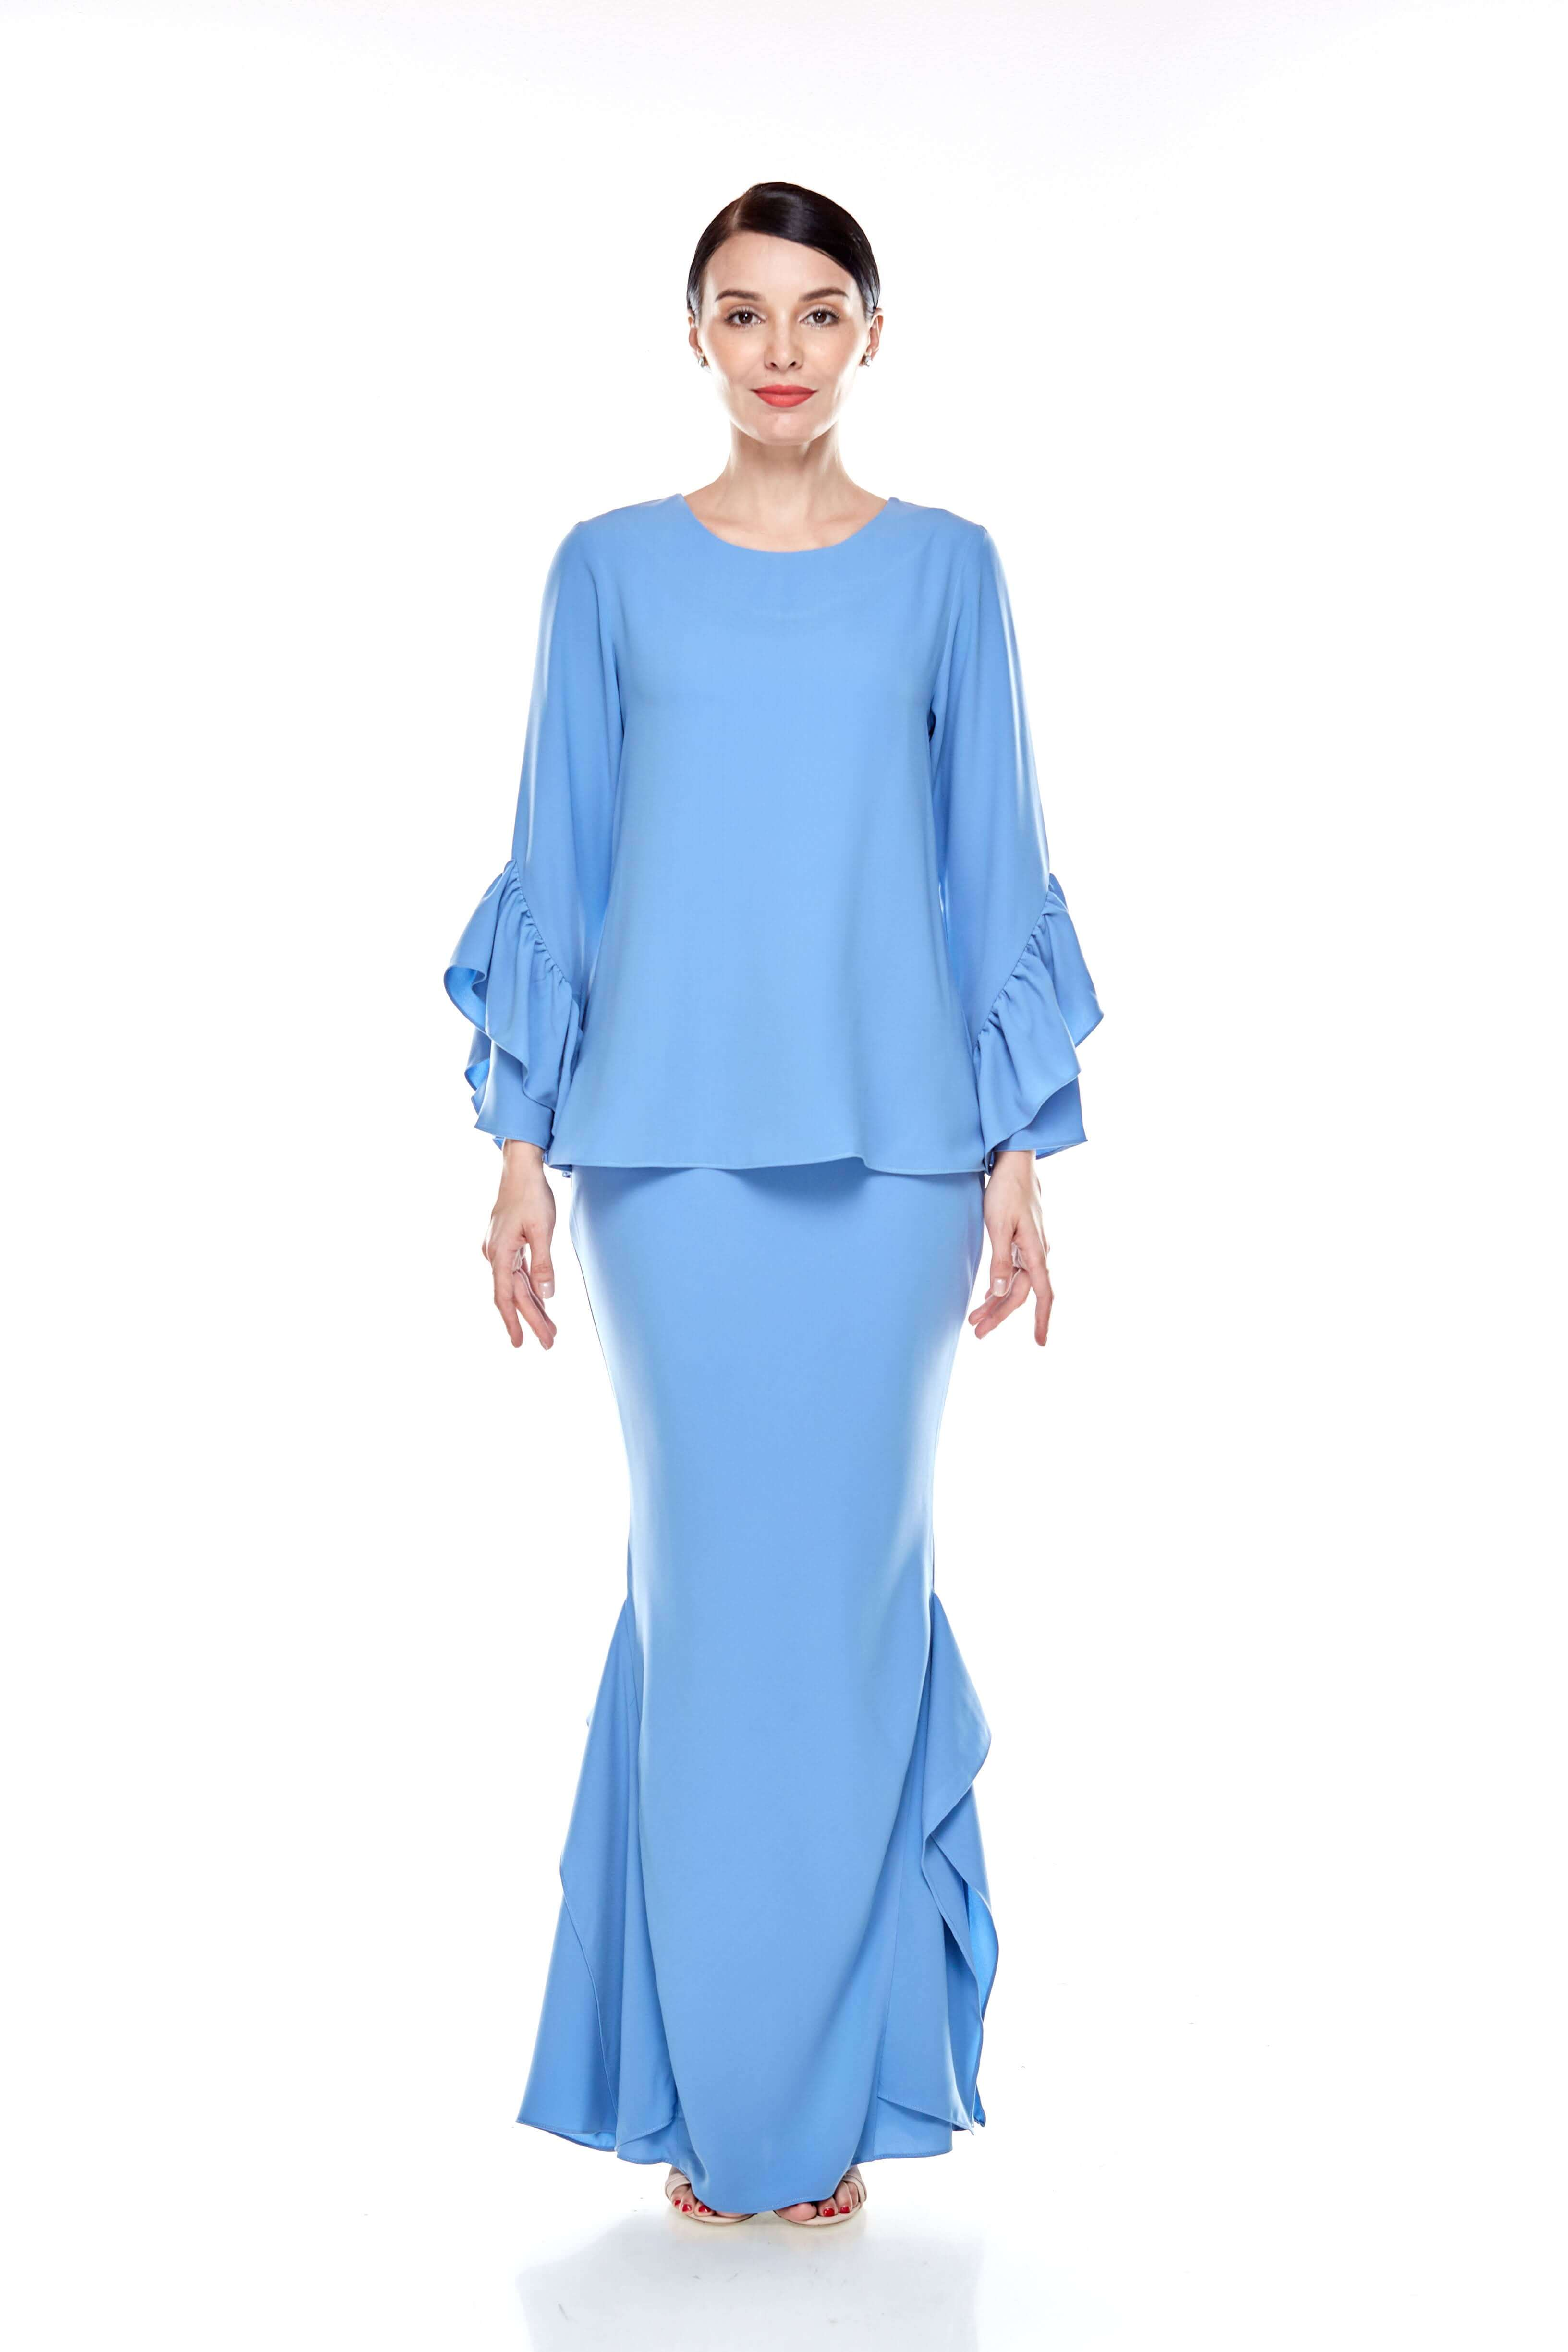 Baby Blue Round Neck Top With Ruffle Sleeve (3)